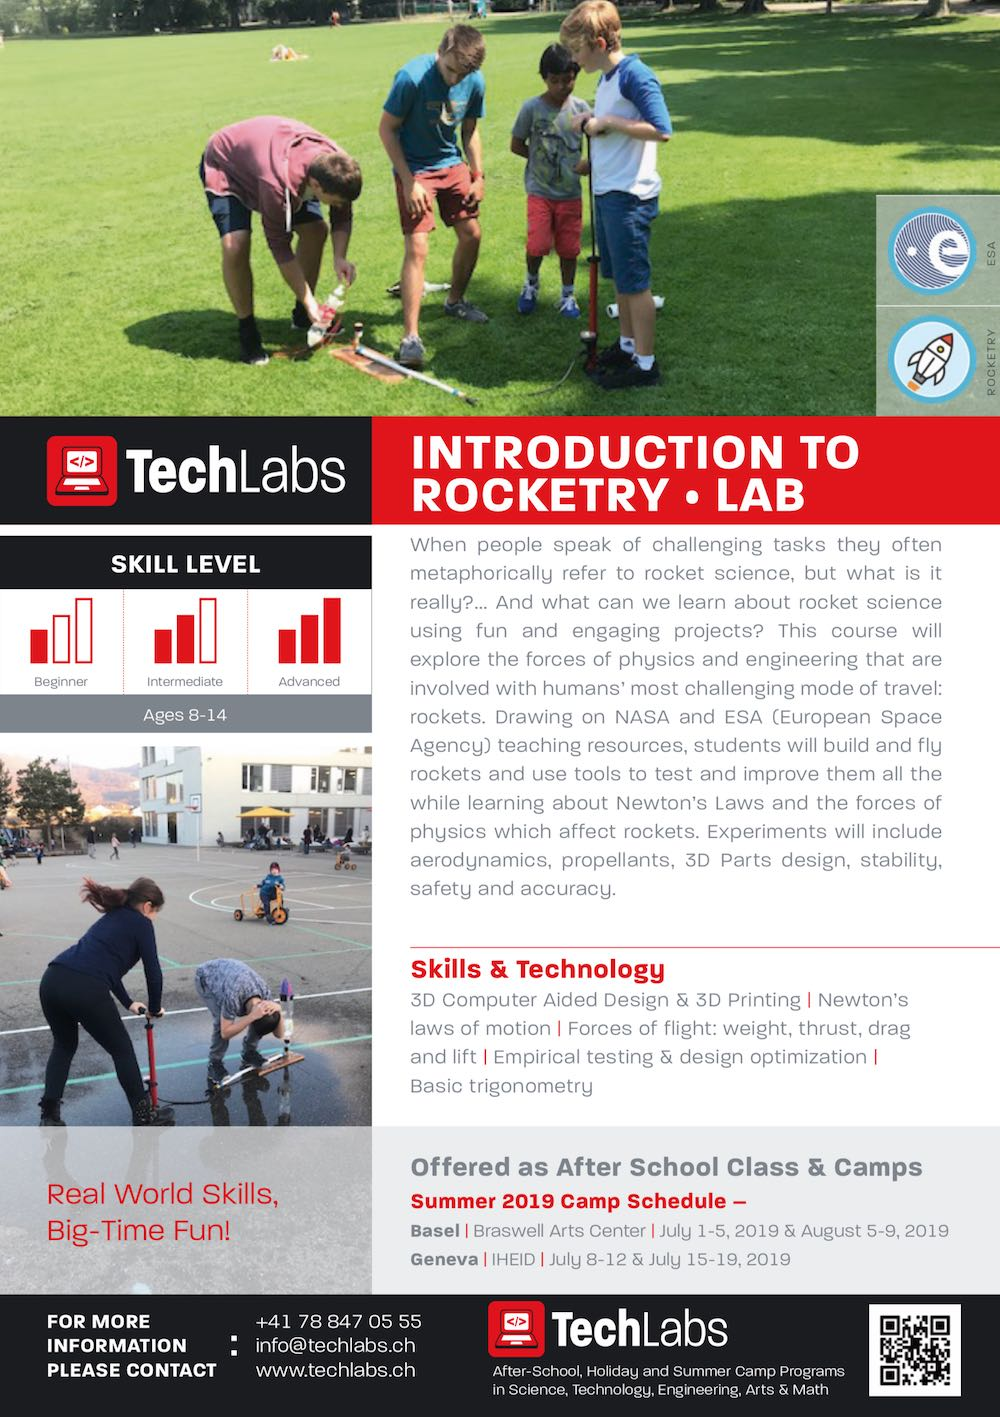 techlabs rocketry